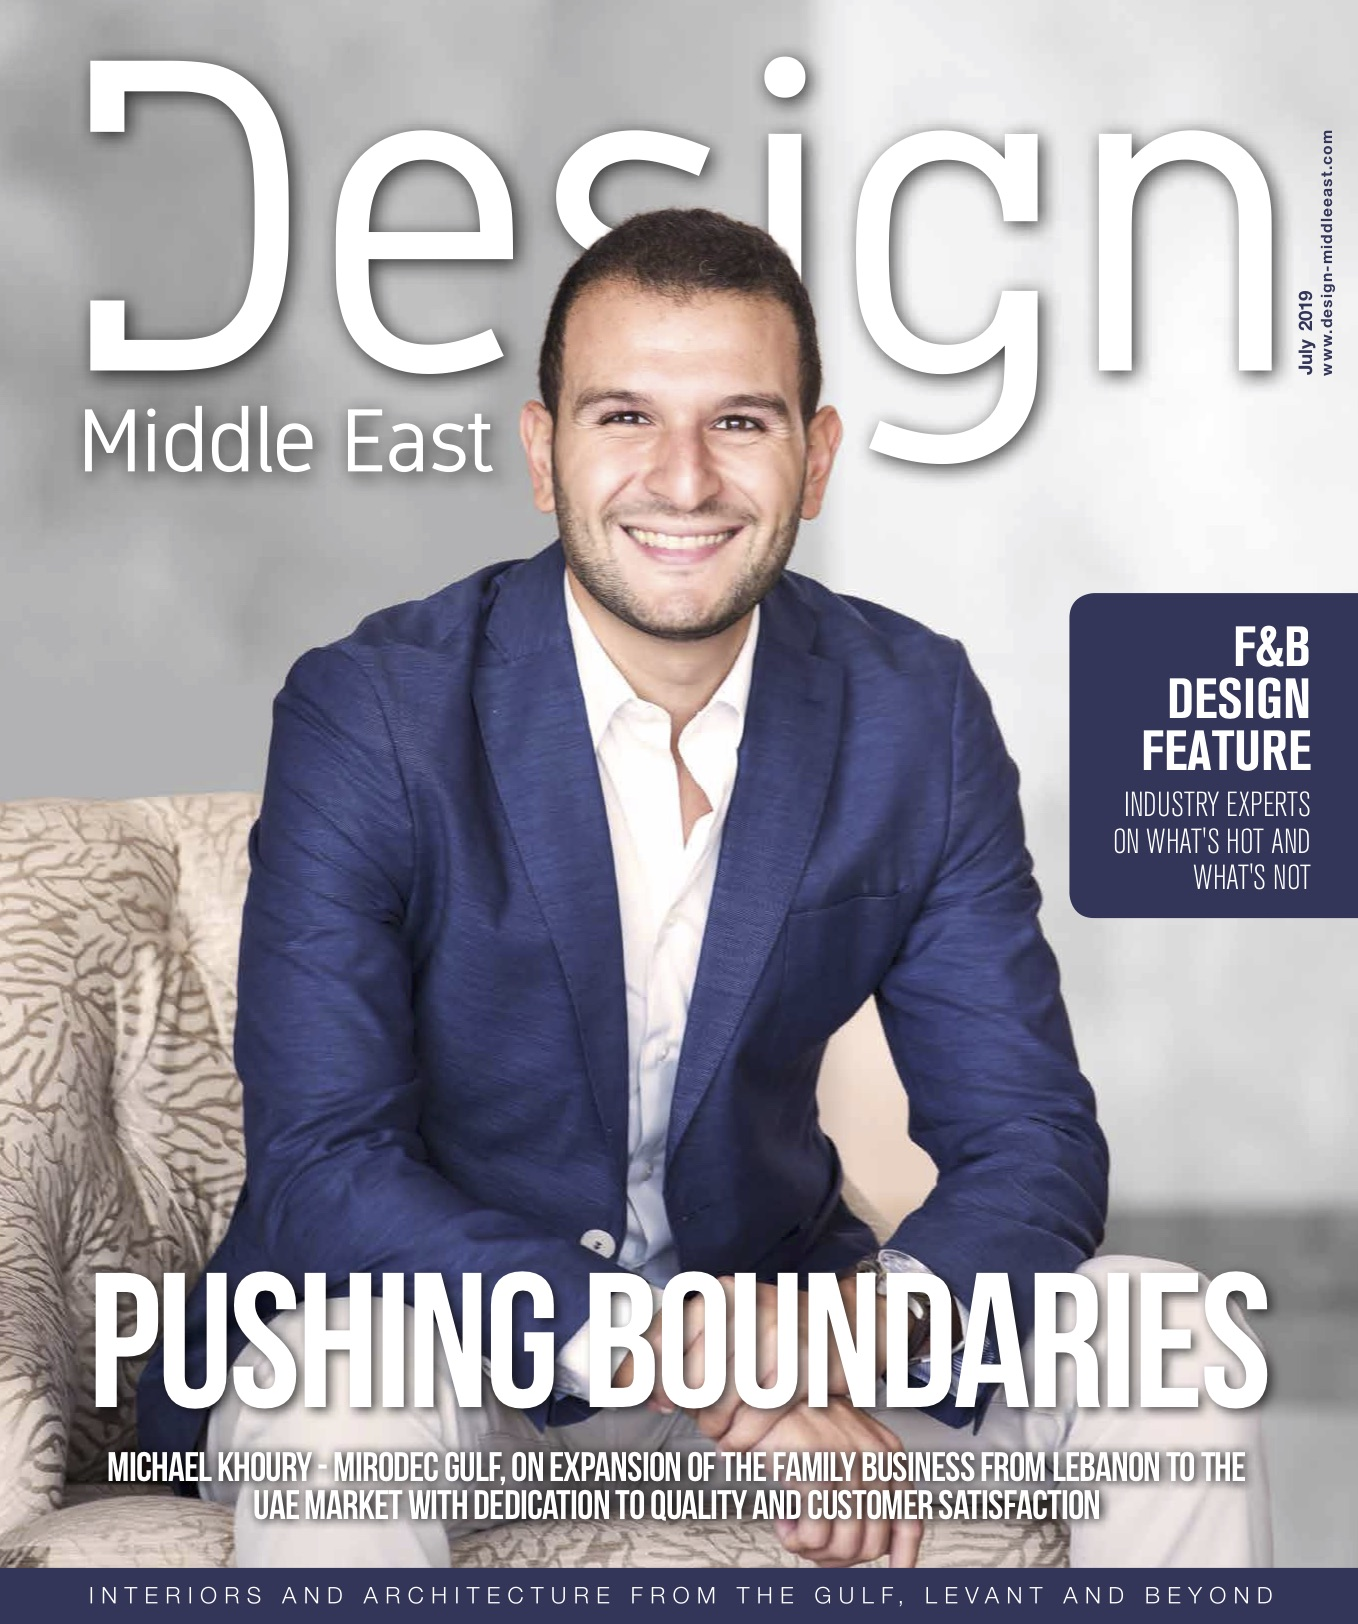 https://www.cbnme.com/magazines/design-middle-east-july-2019/